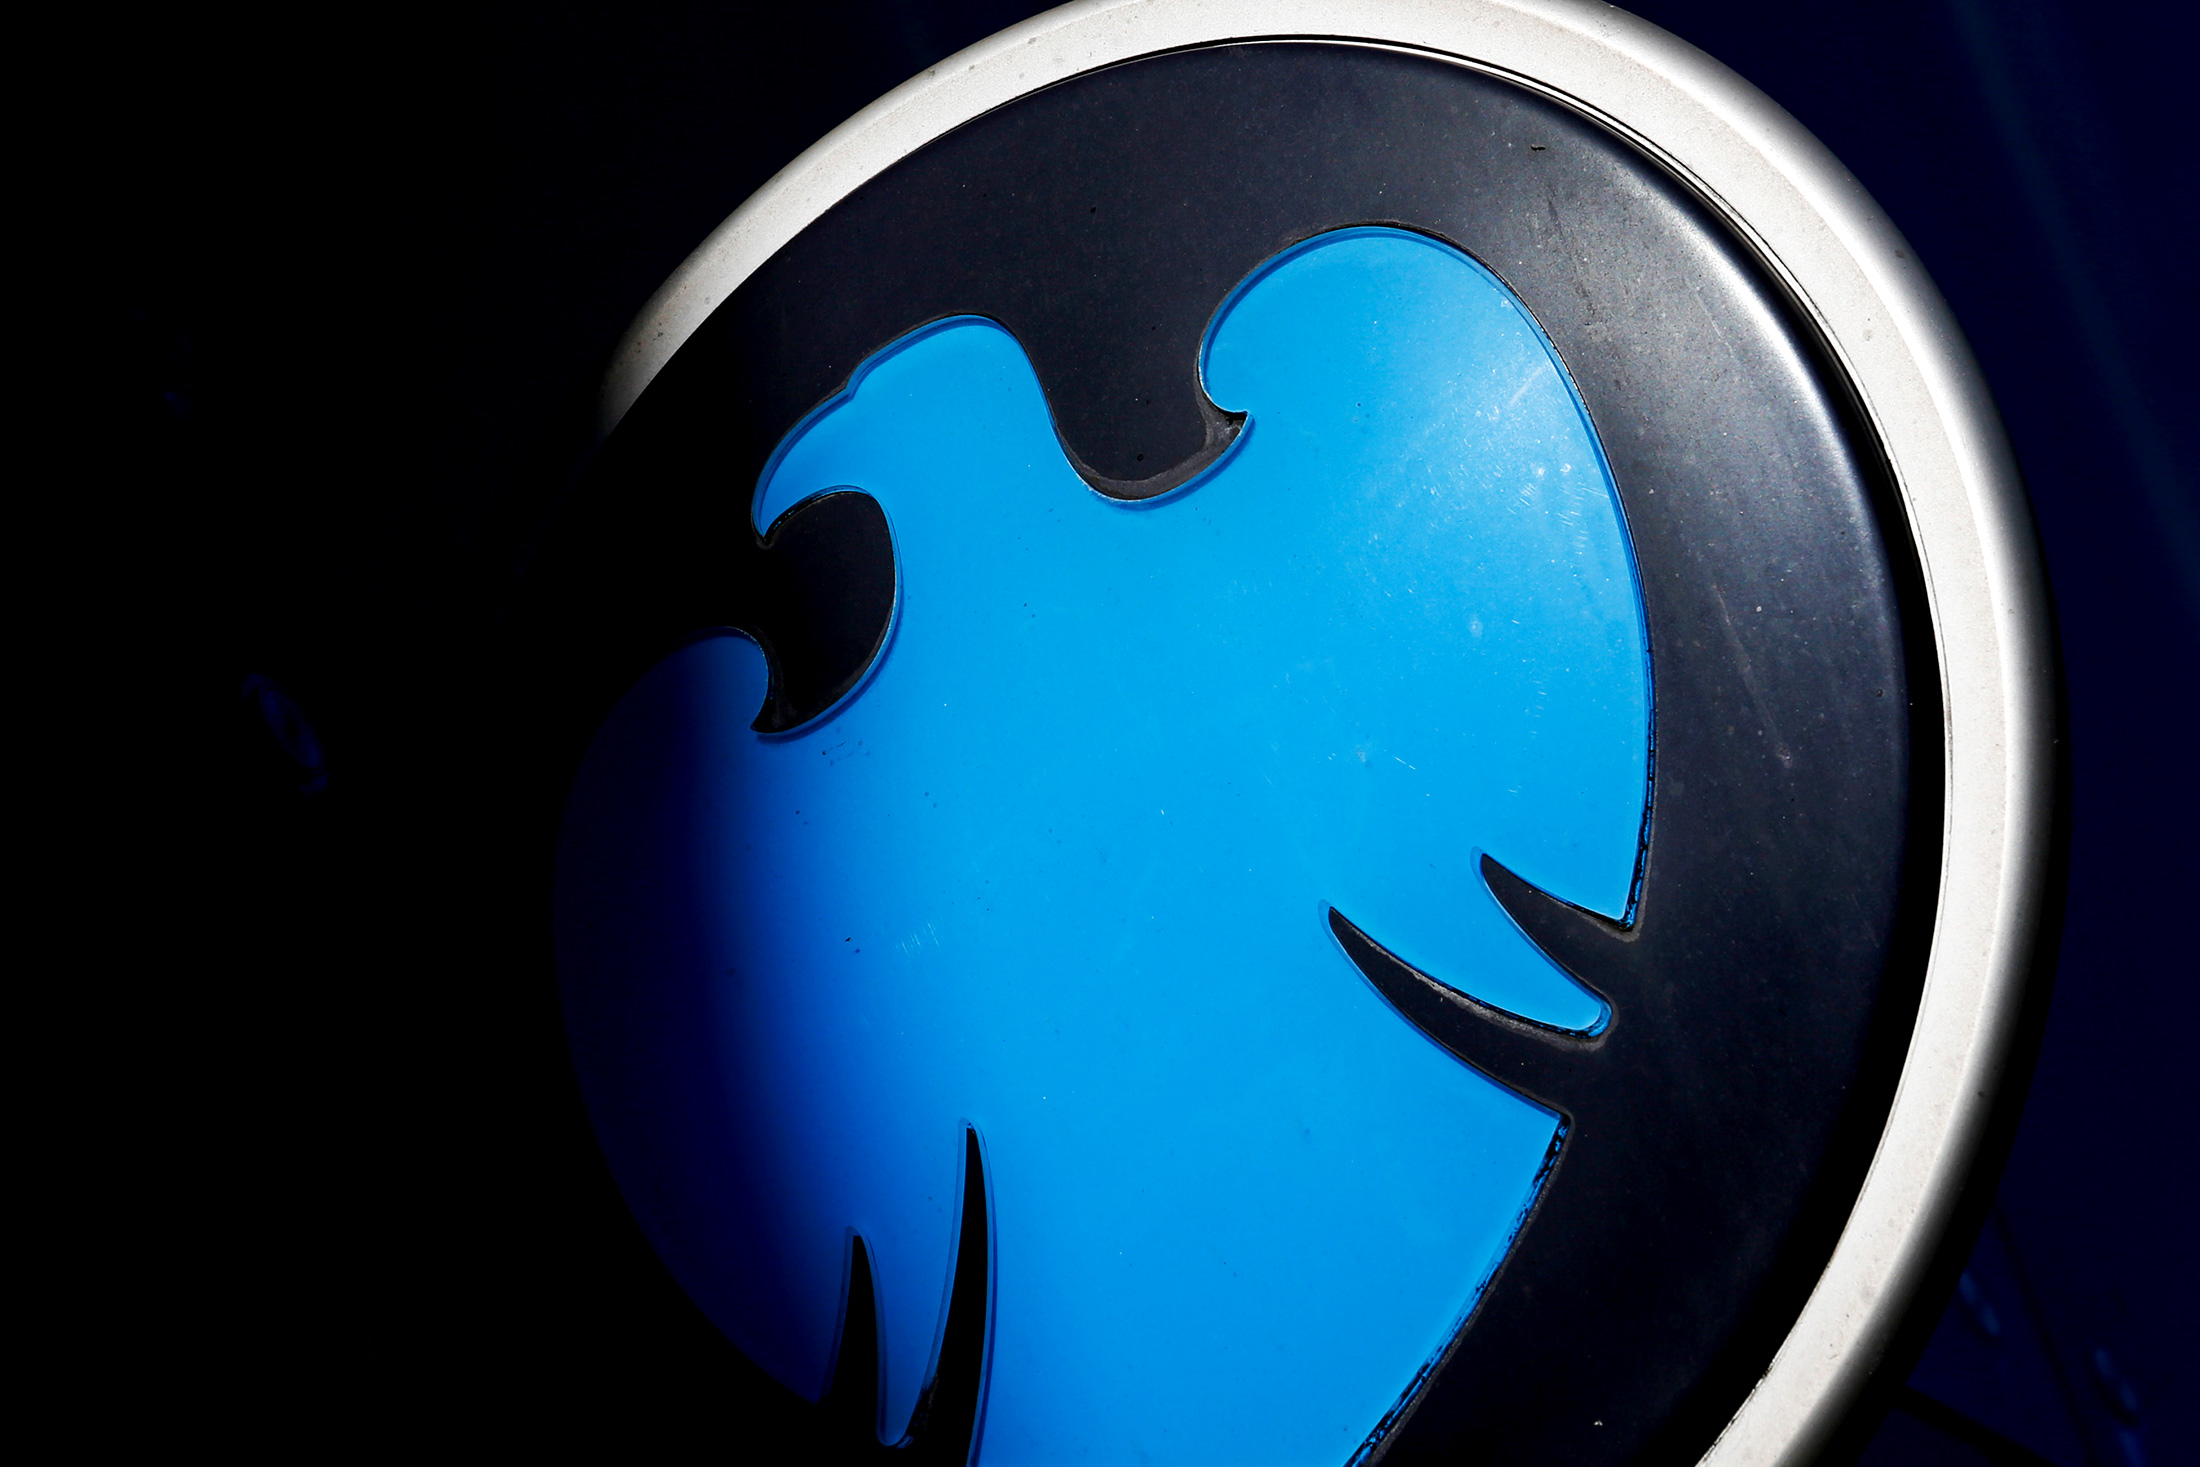 Ex Barclays Trader Says He Felt Used By Swaps Colleagues Bloomberg